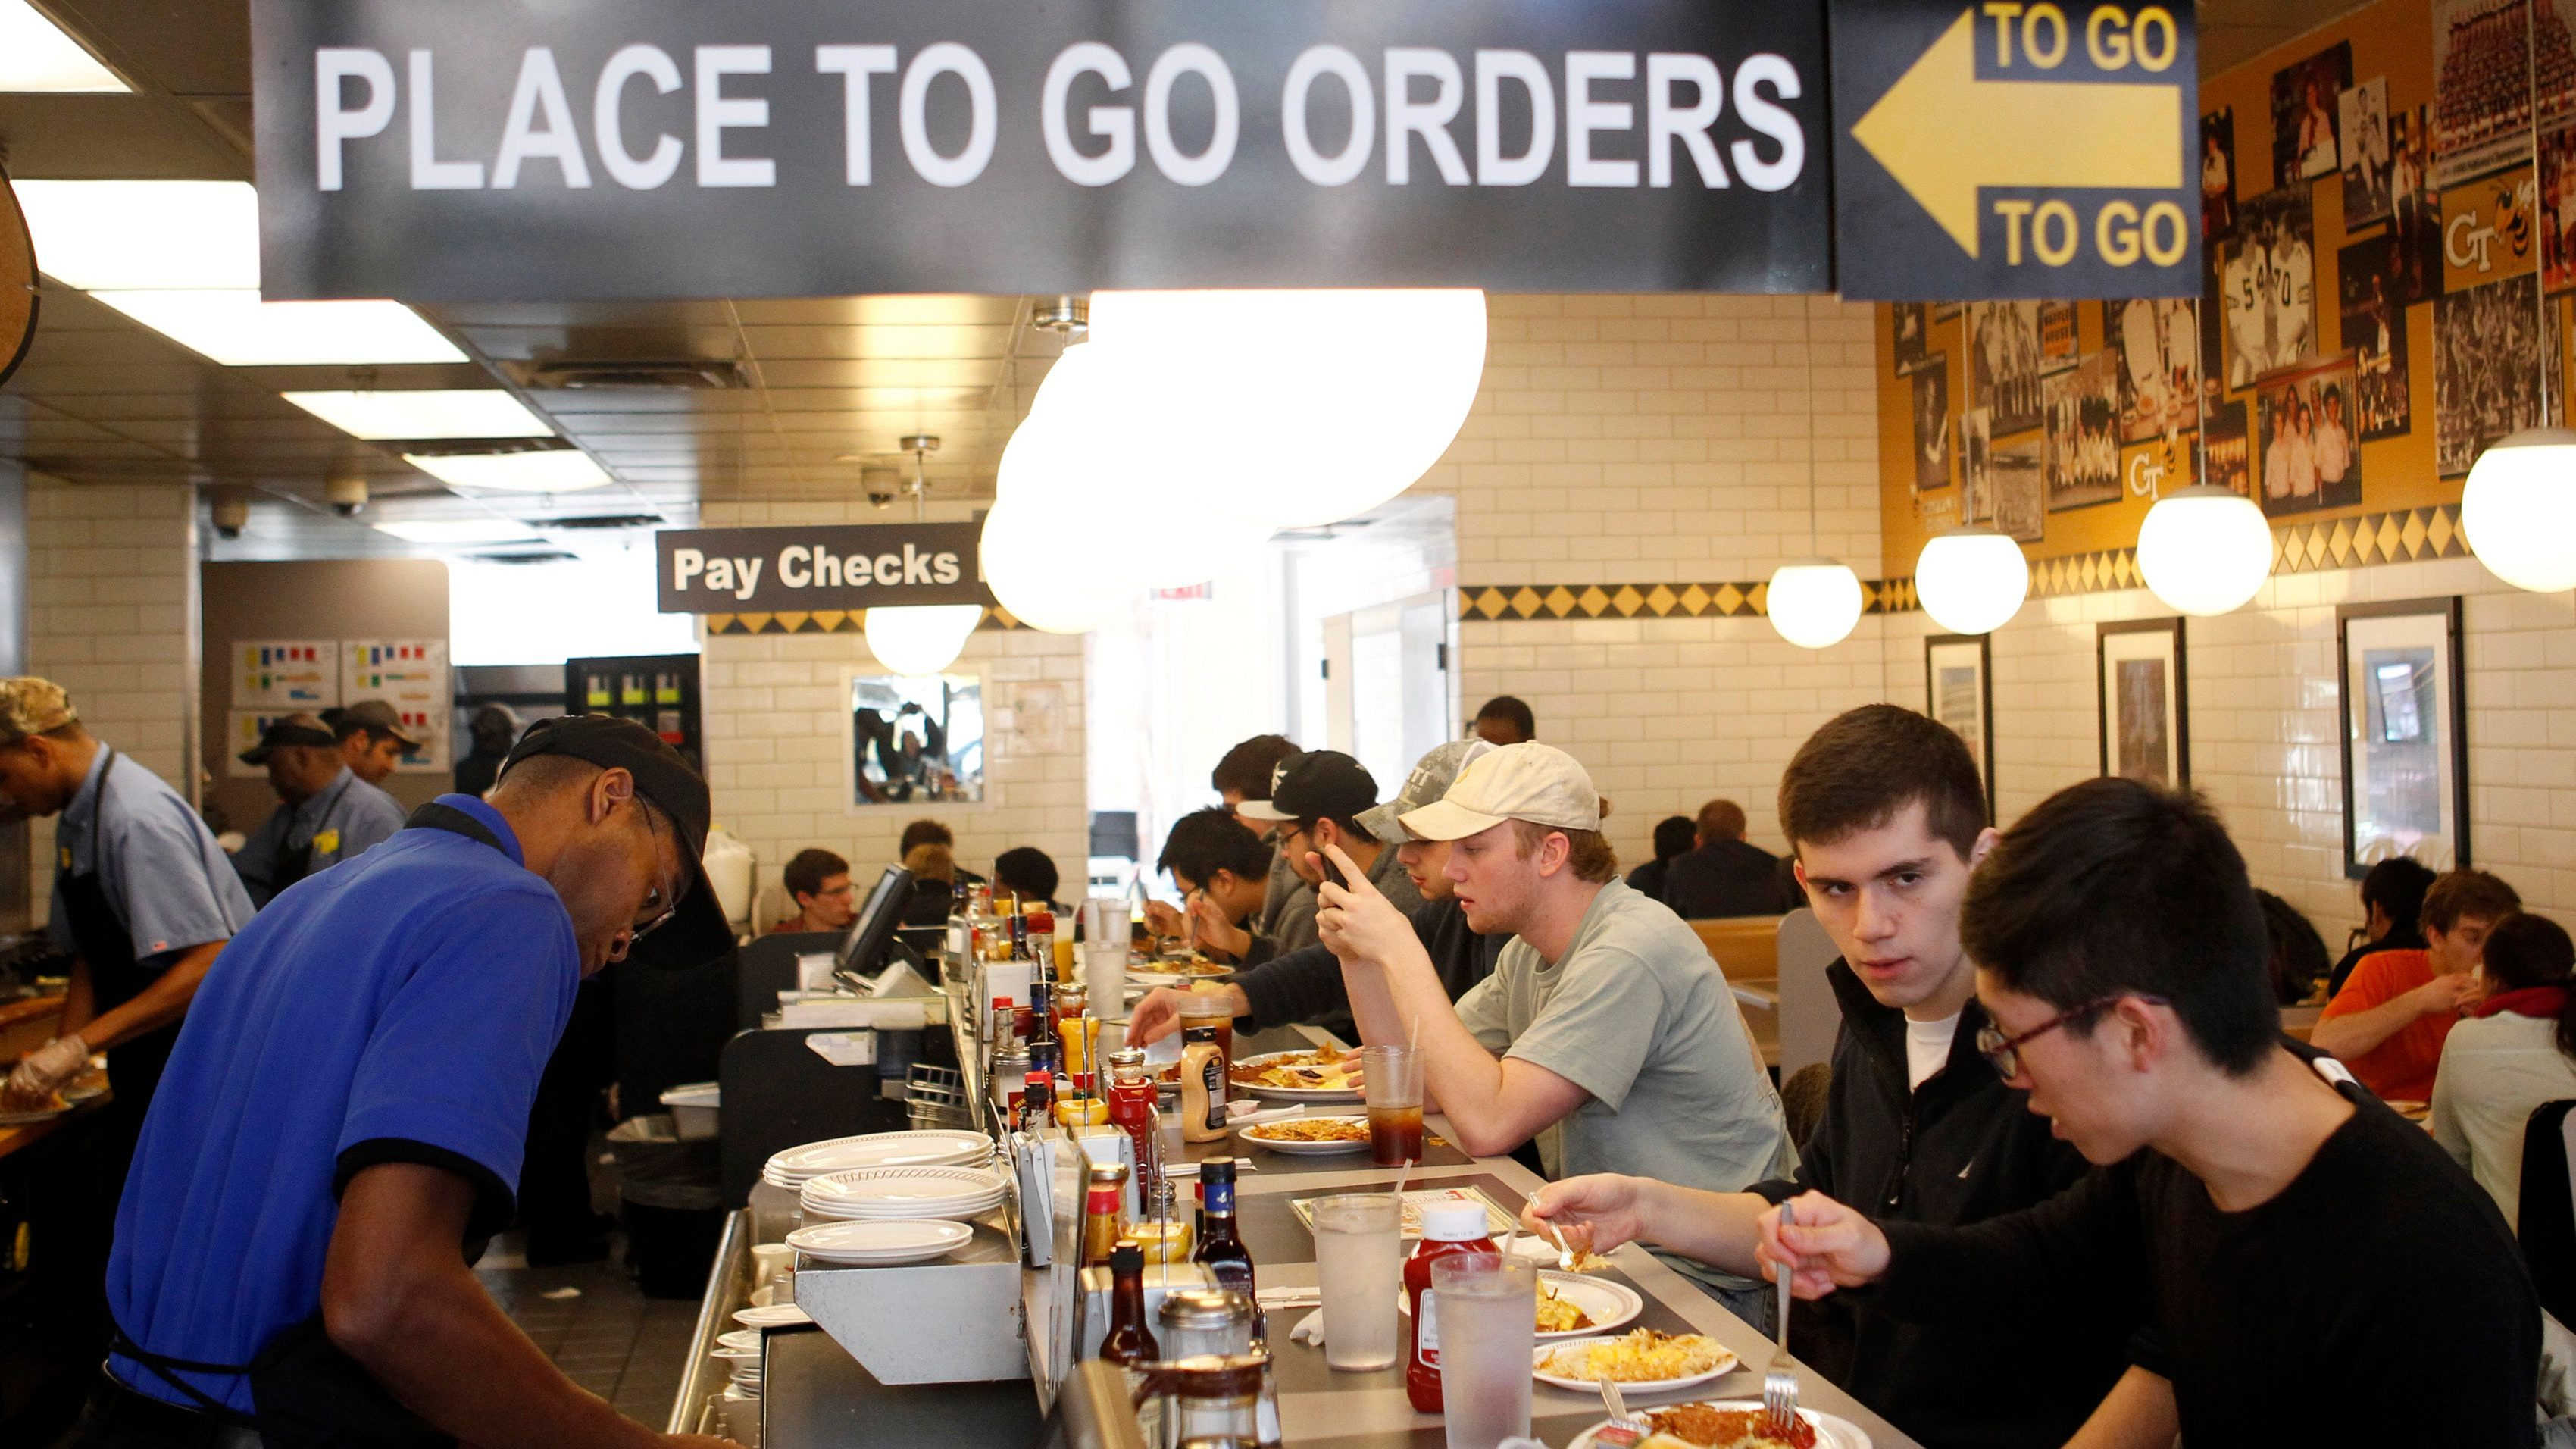 Customers pack a front counter at a Waffle House after spending two days cooped up due to an ice storm in downtown Atlanta